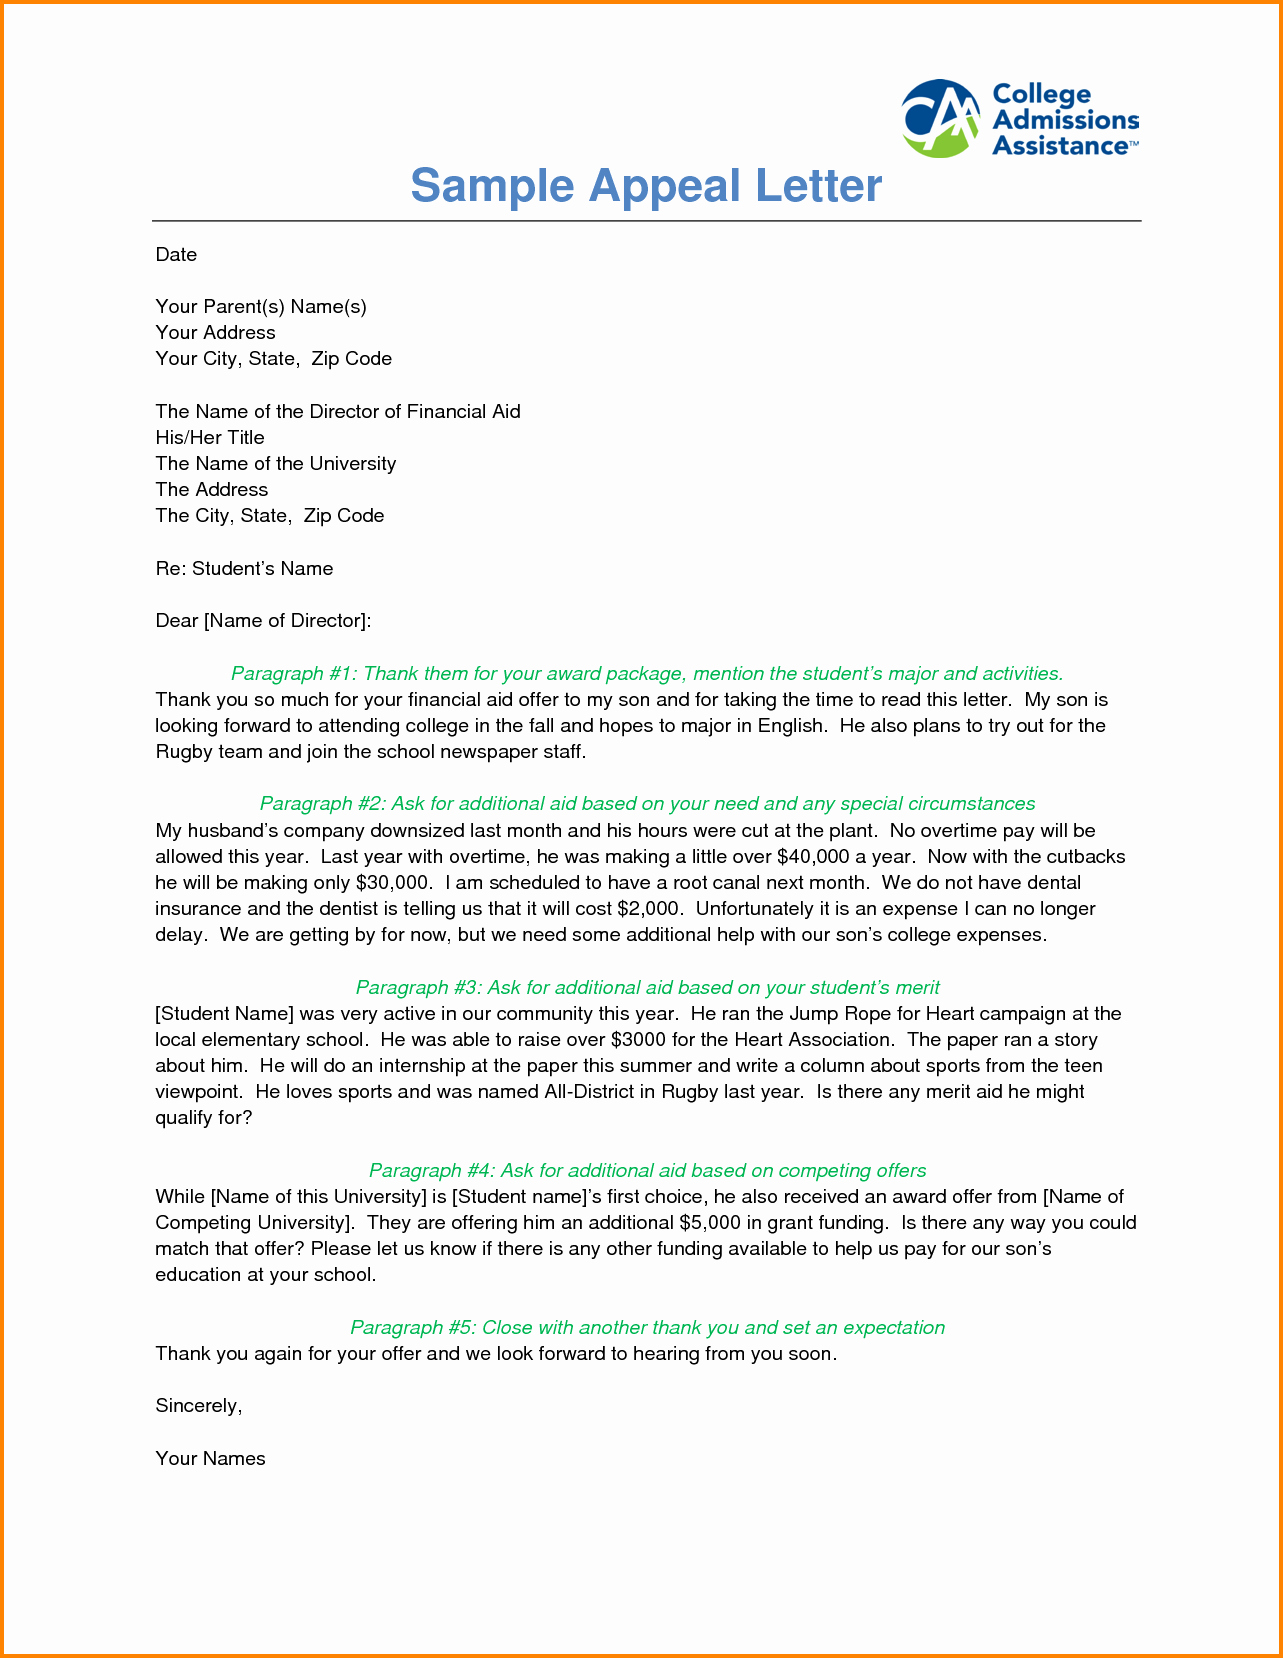 Sample Sap Appeal Letter Fresh 6 Sap Appeal Example Letter